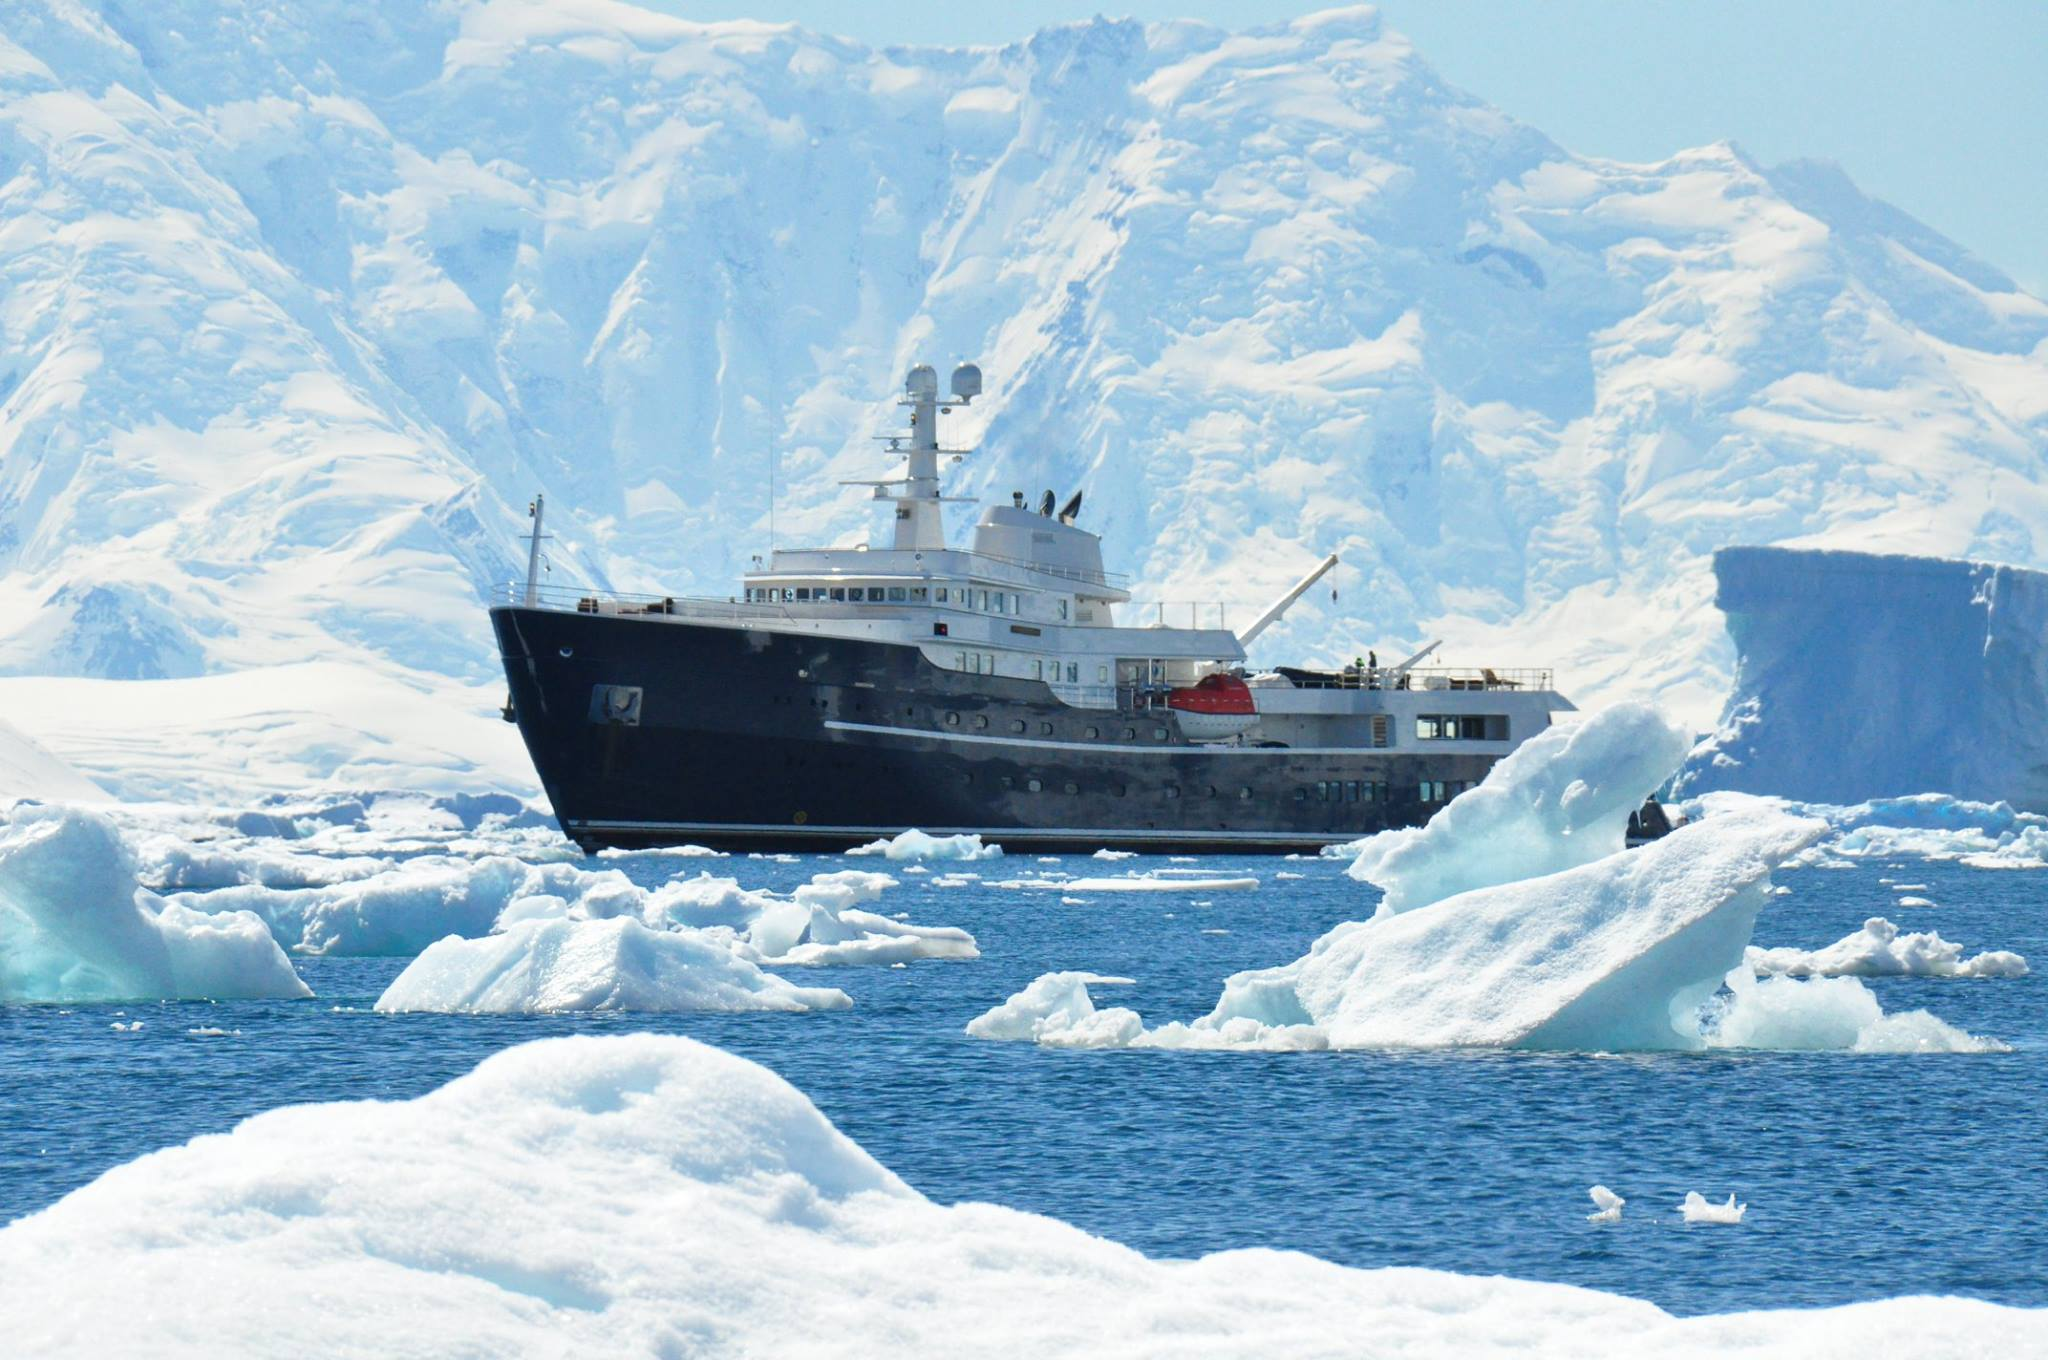 icon yachts icebreaking explorer legend spotted in